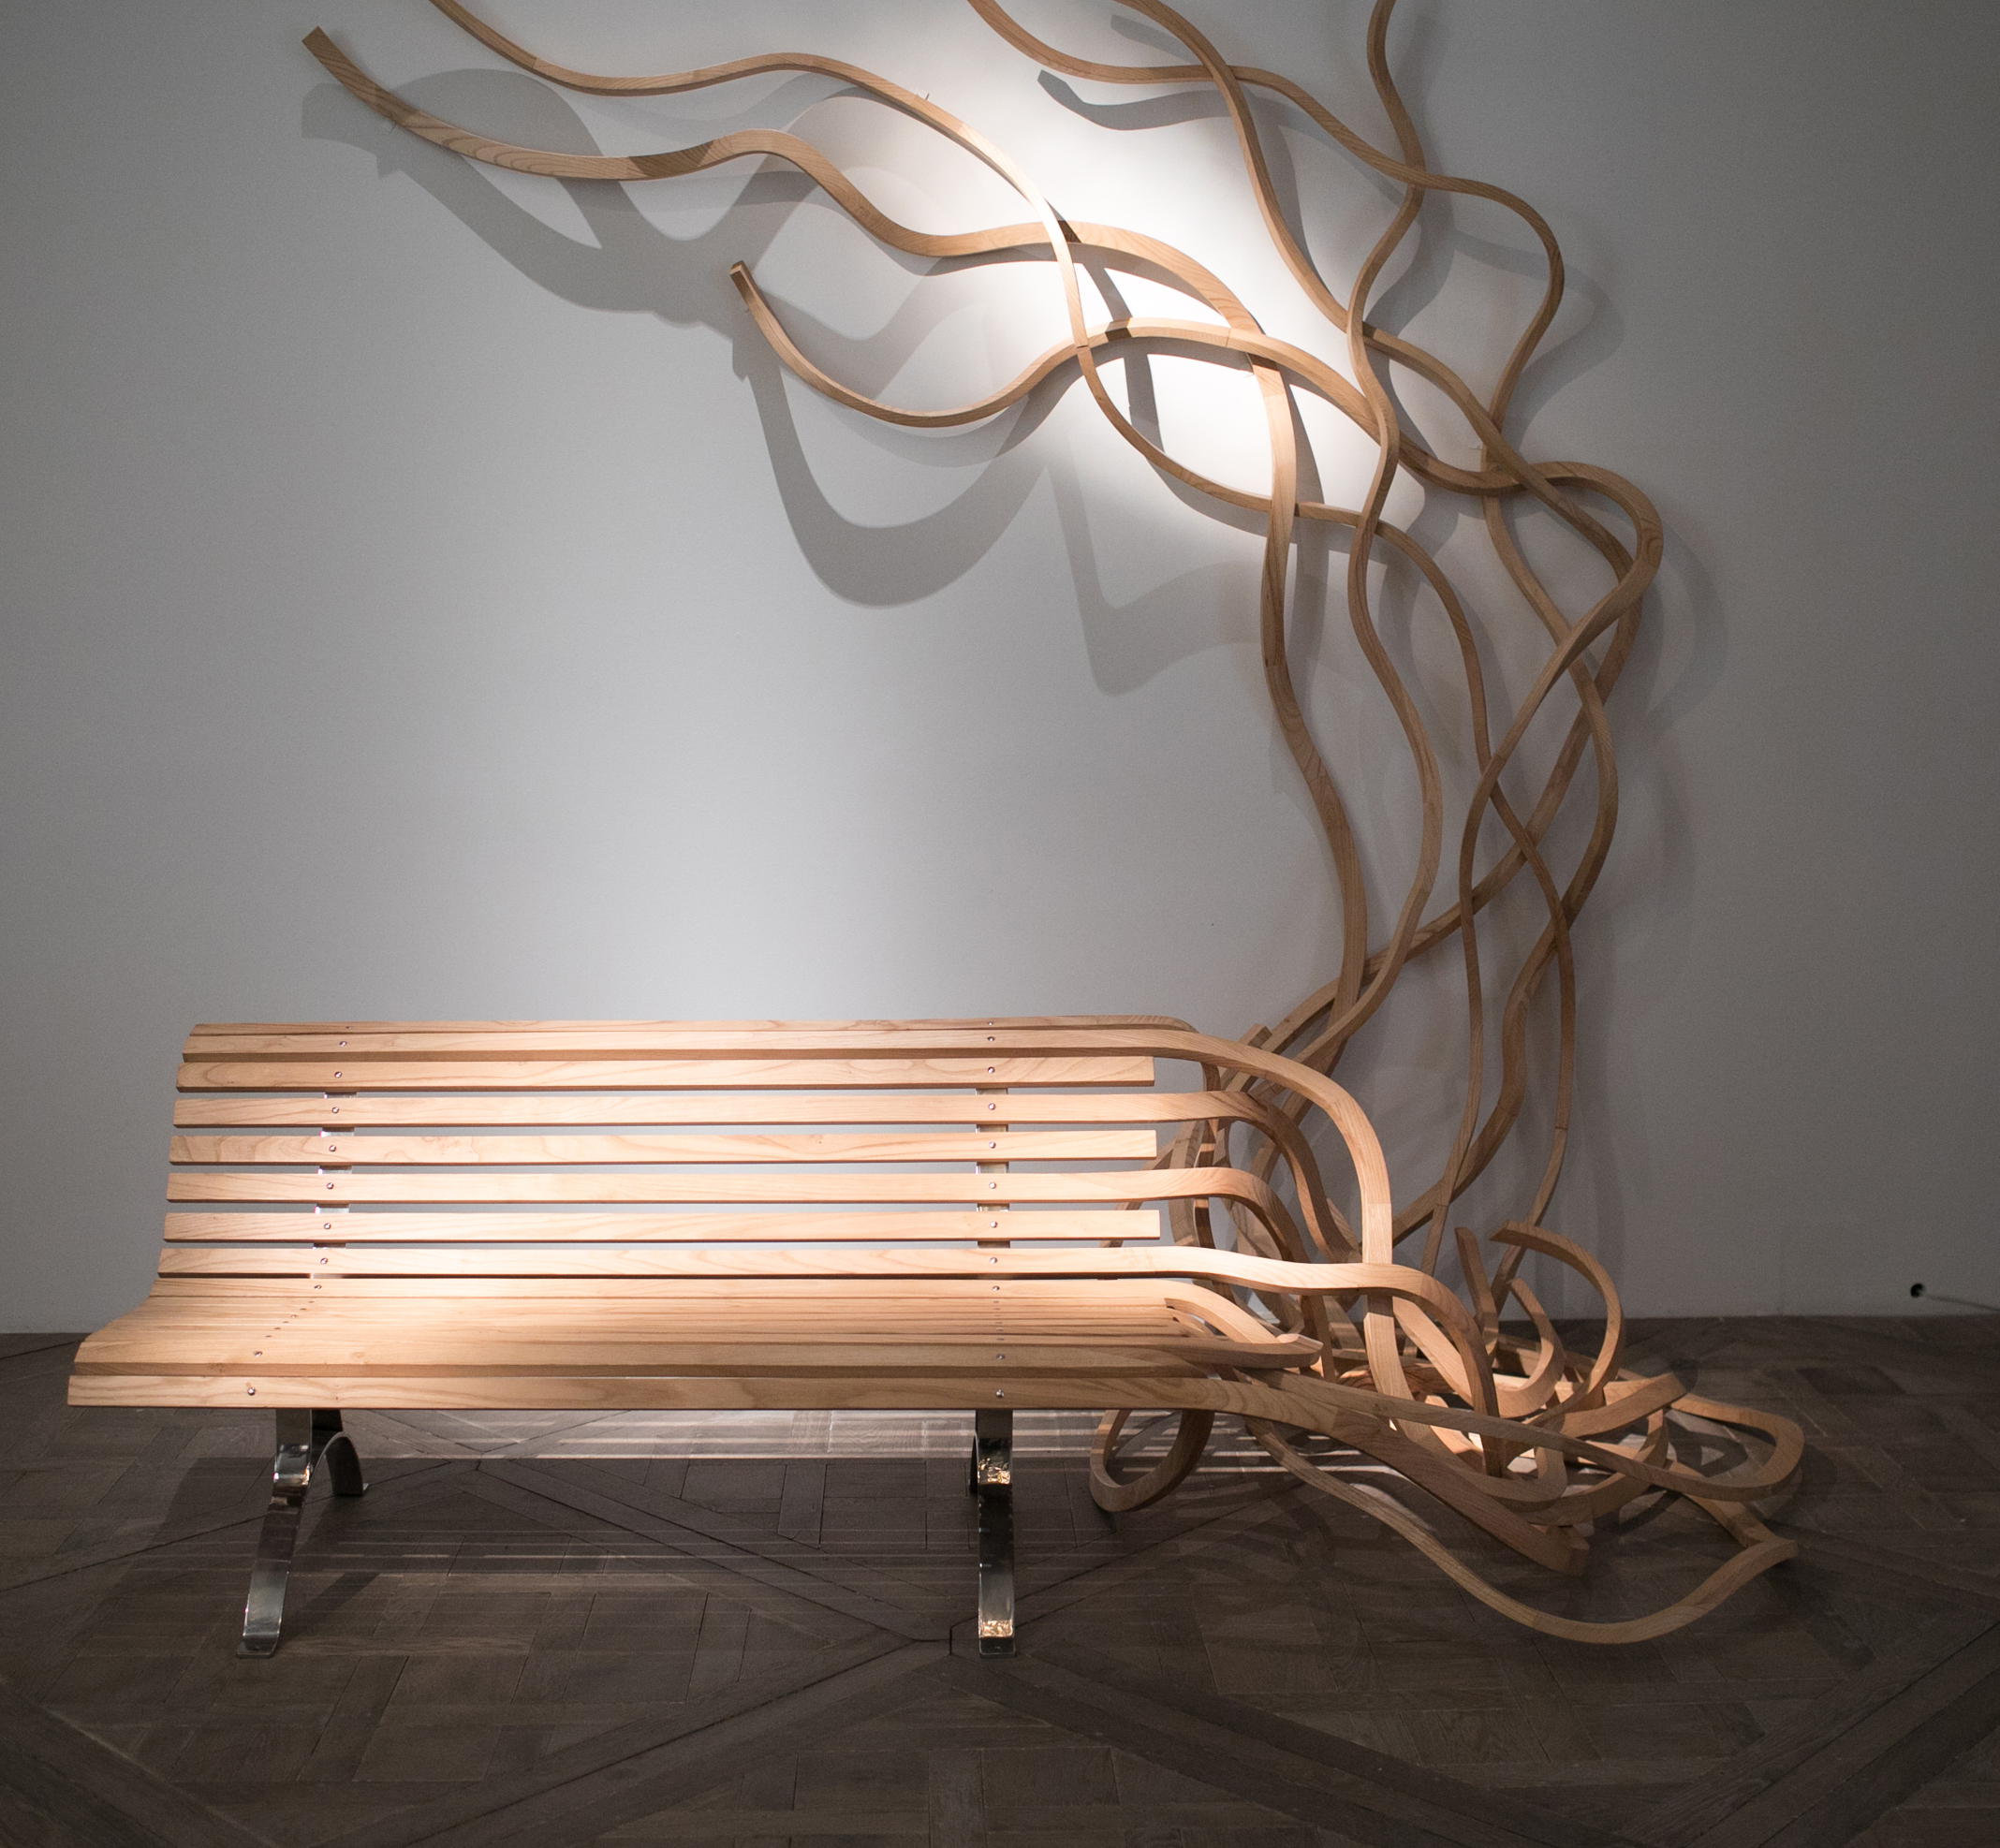 An innovative spin on what a bench should be, by Pablo Reinoso